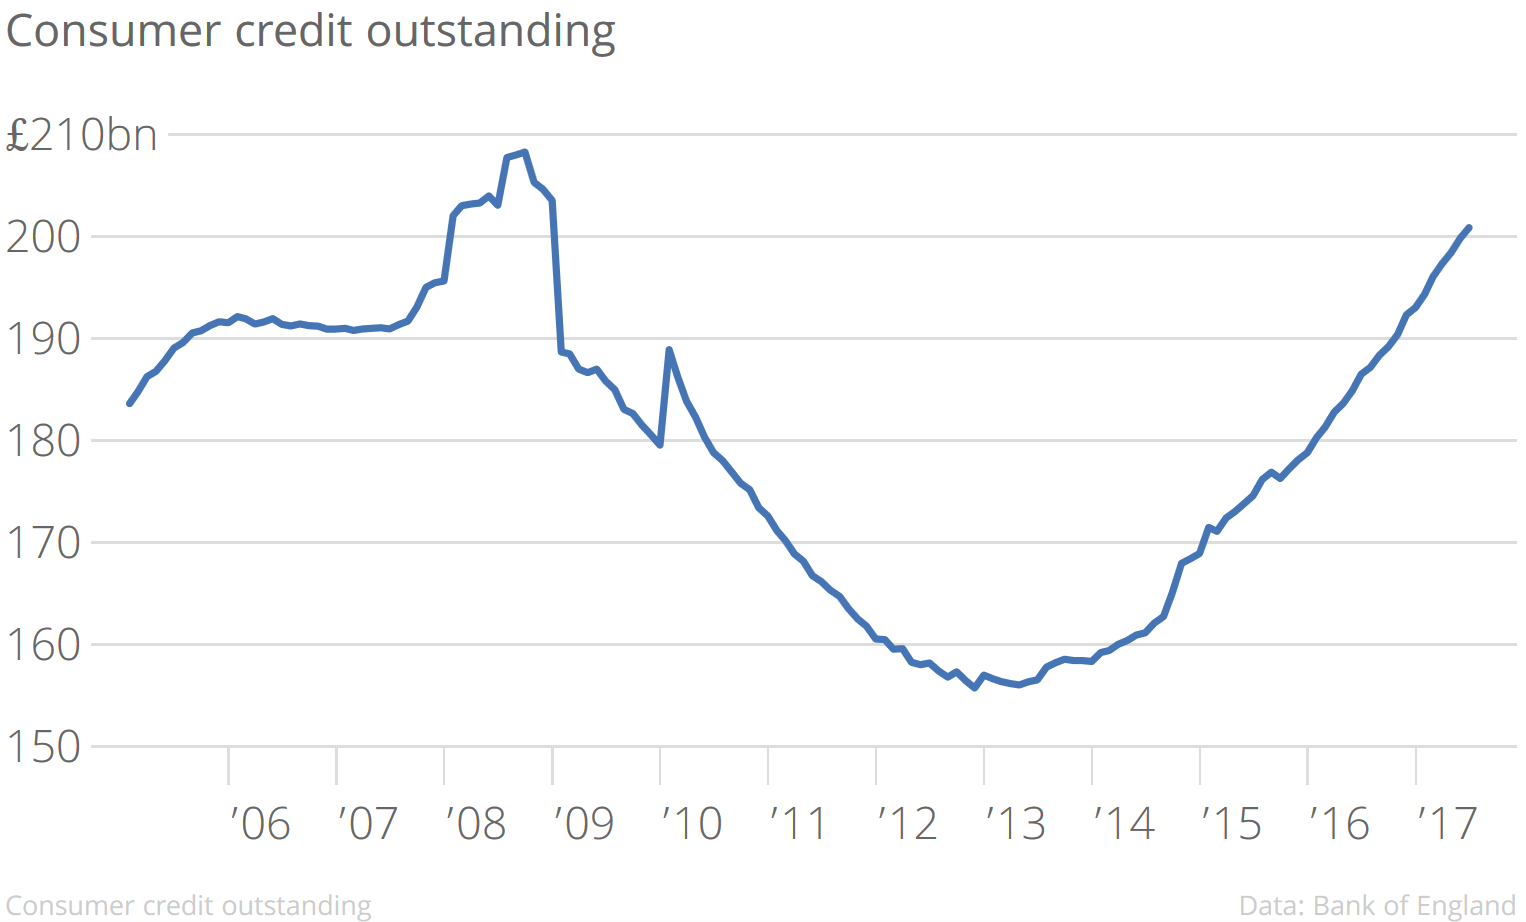 Consumer Credit Outstanding, 2005 - 2017